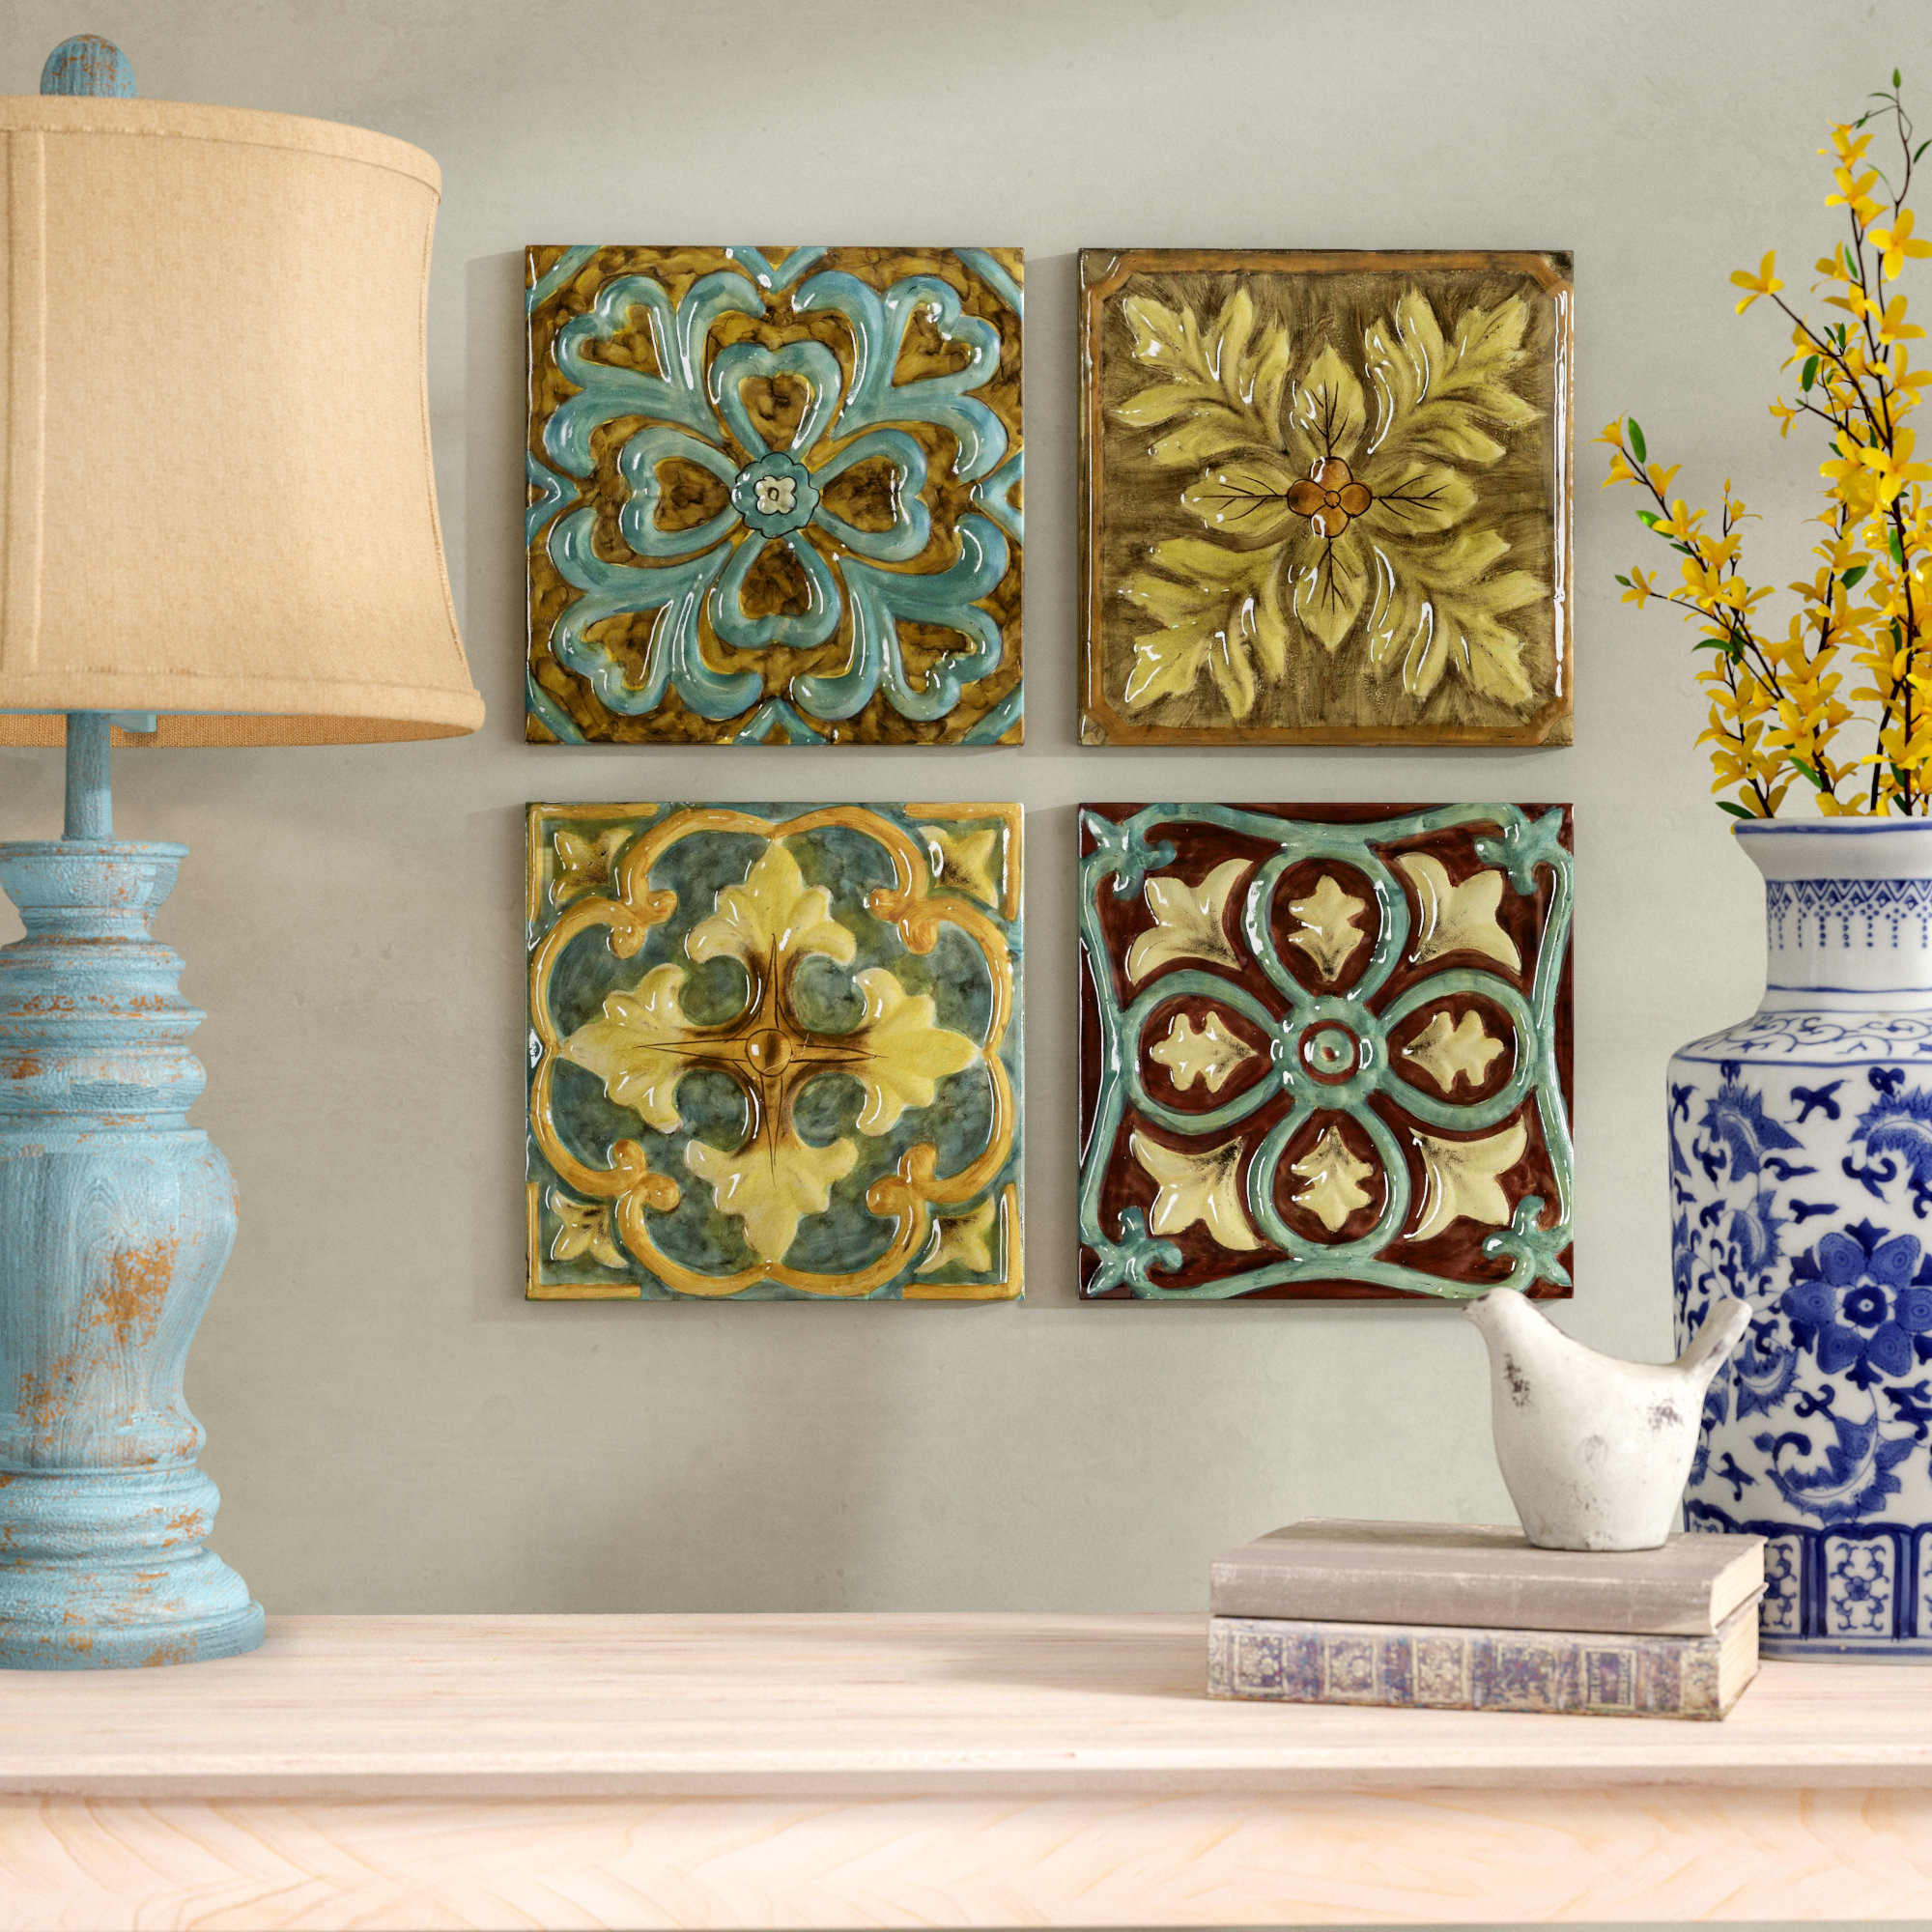 Medallion Wall Decor | Wayfair in Small Medallion Wall Decor (Image 10 of 30)